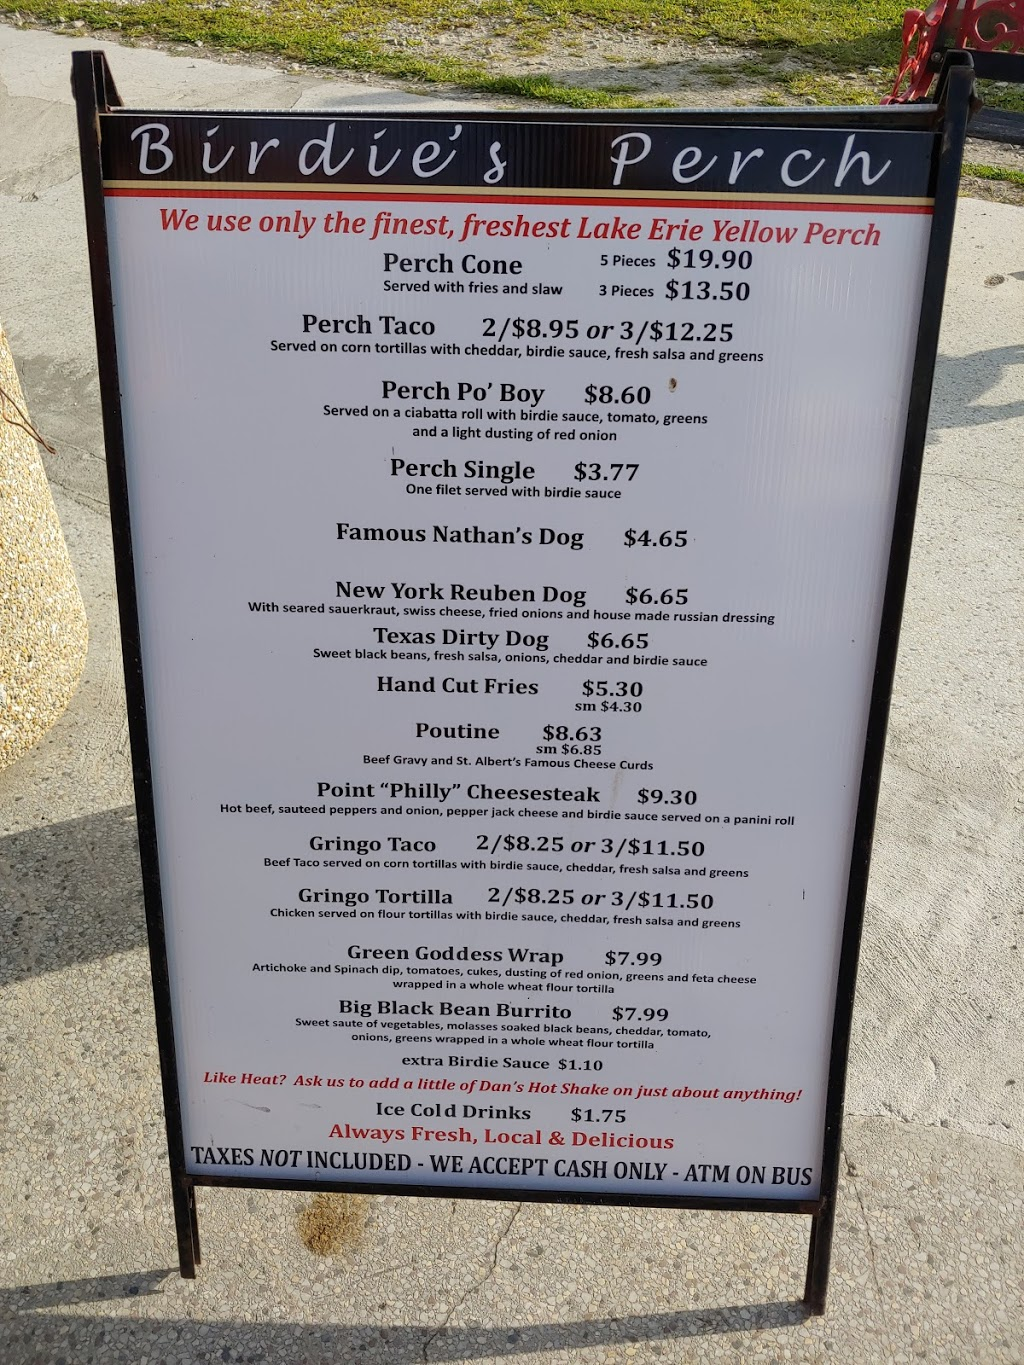 Birdies Perch   meal takeaway   625 Point Pelee Dr, Leamington, ON N8H 3V4, Canada   5195517043 OR +1 519-551-7043